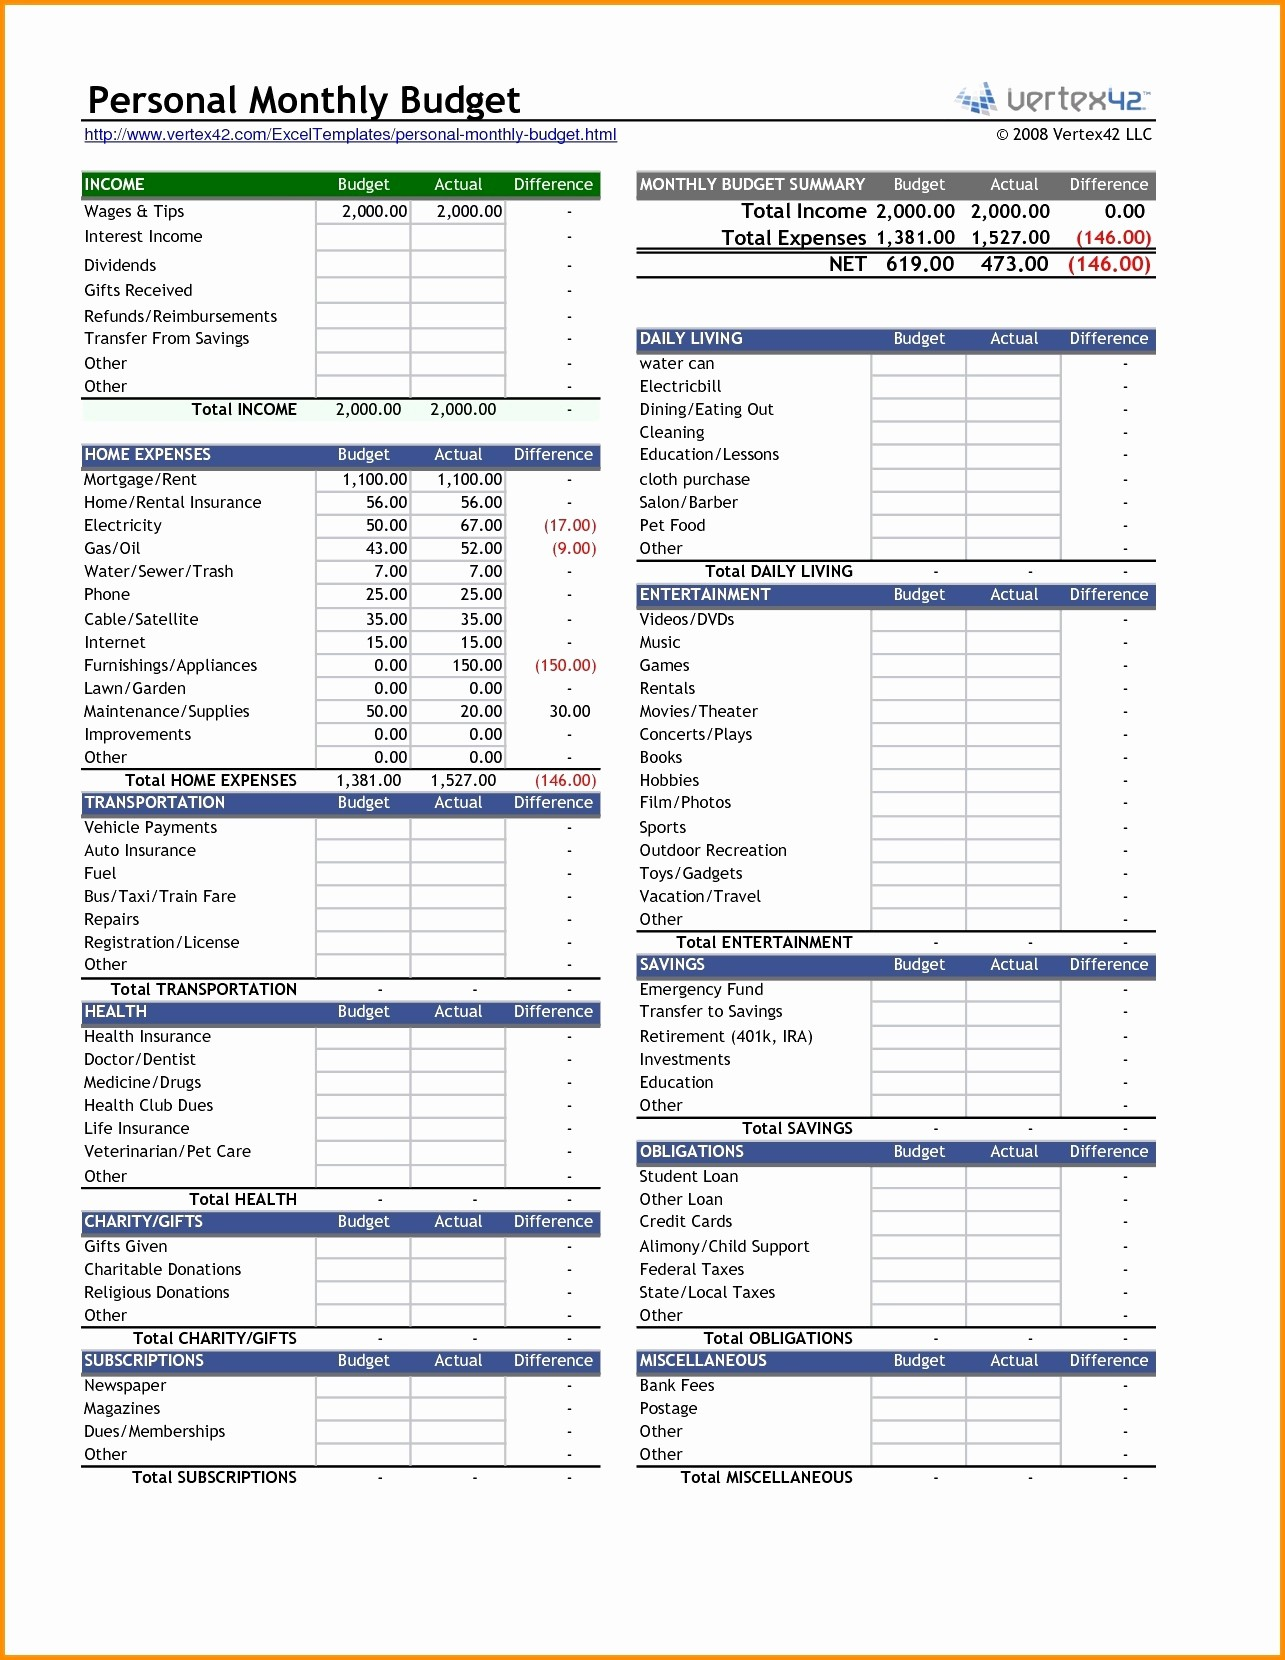 Budget Worksheet Dave Ramsey Printable Worksheets And Activities For Teachers Parents Tutors And Homeschool Families